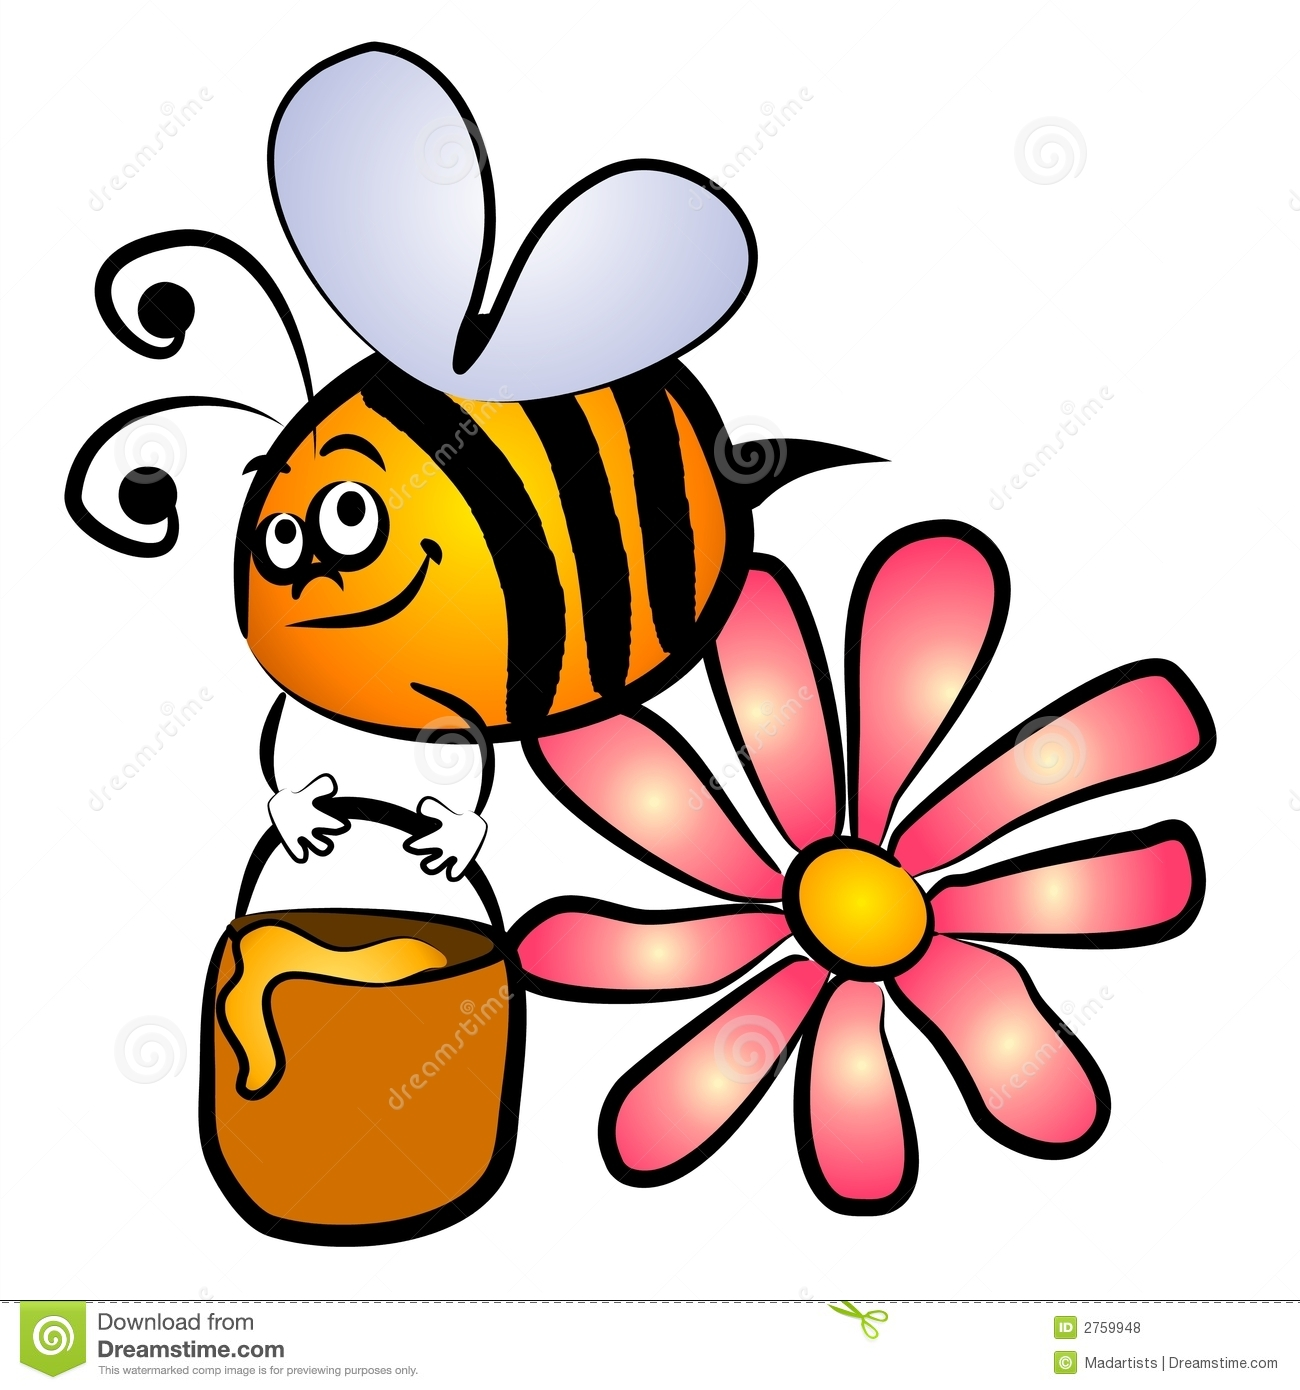 Superman bee clipart picture freeuse library Gallery For > Honey Bee Clipart Love picture freeuse library